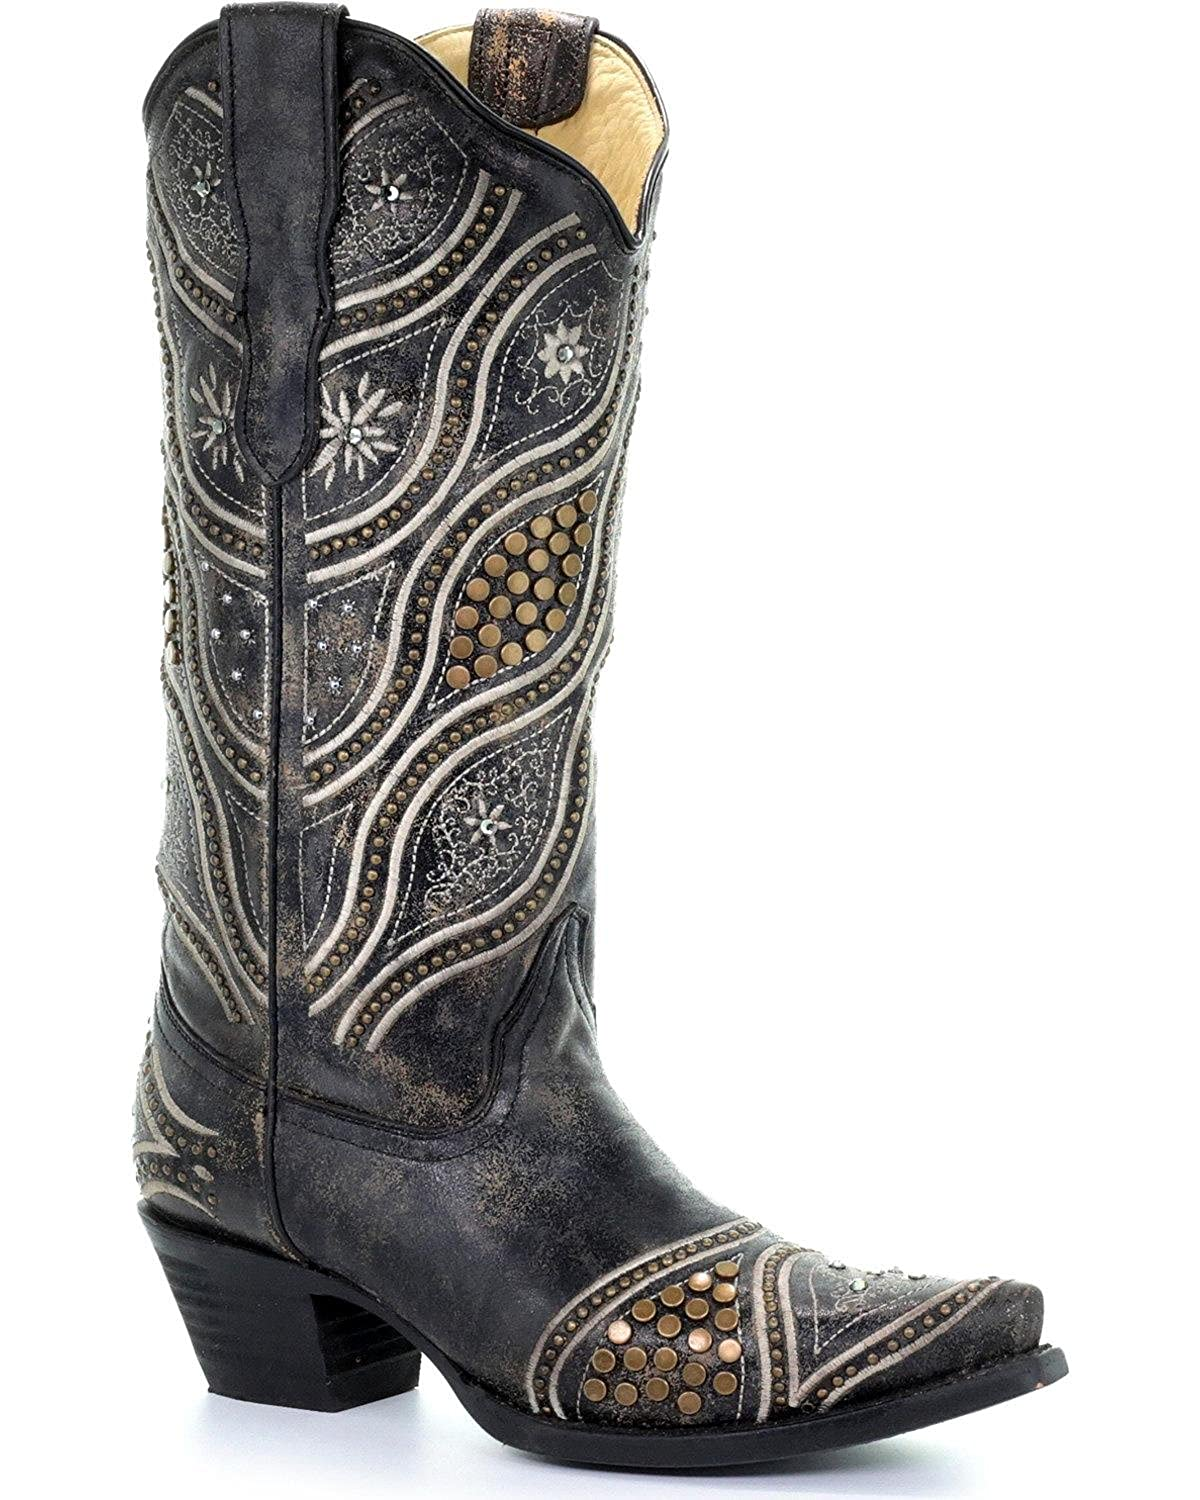 f1de44aa121 Amazon.com | CORRAL Women's Embroidered Studded Cowgirl Boot Snip ...